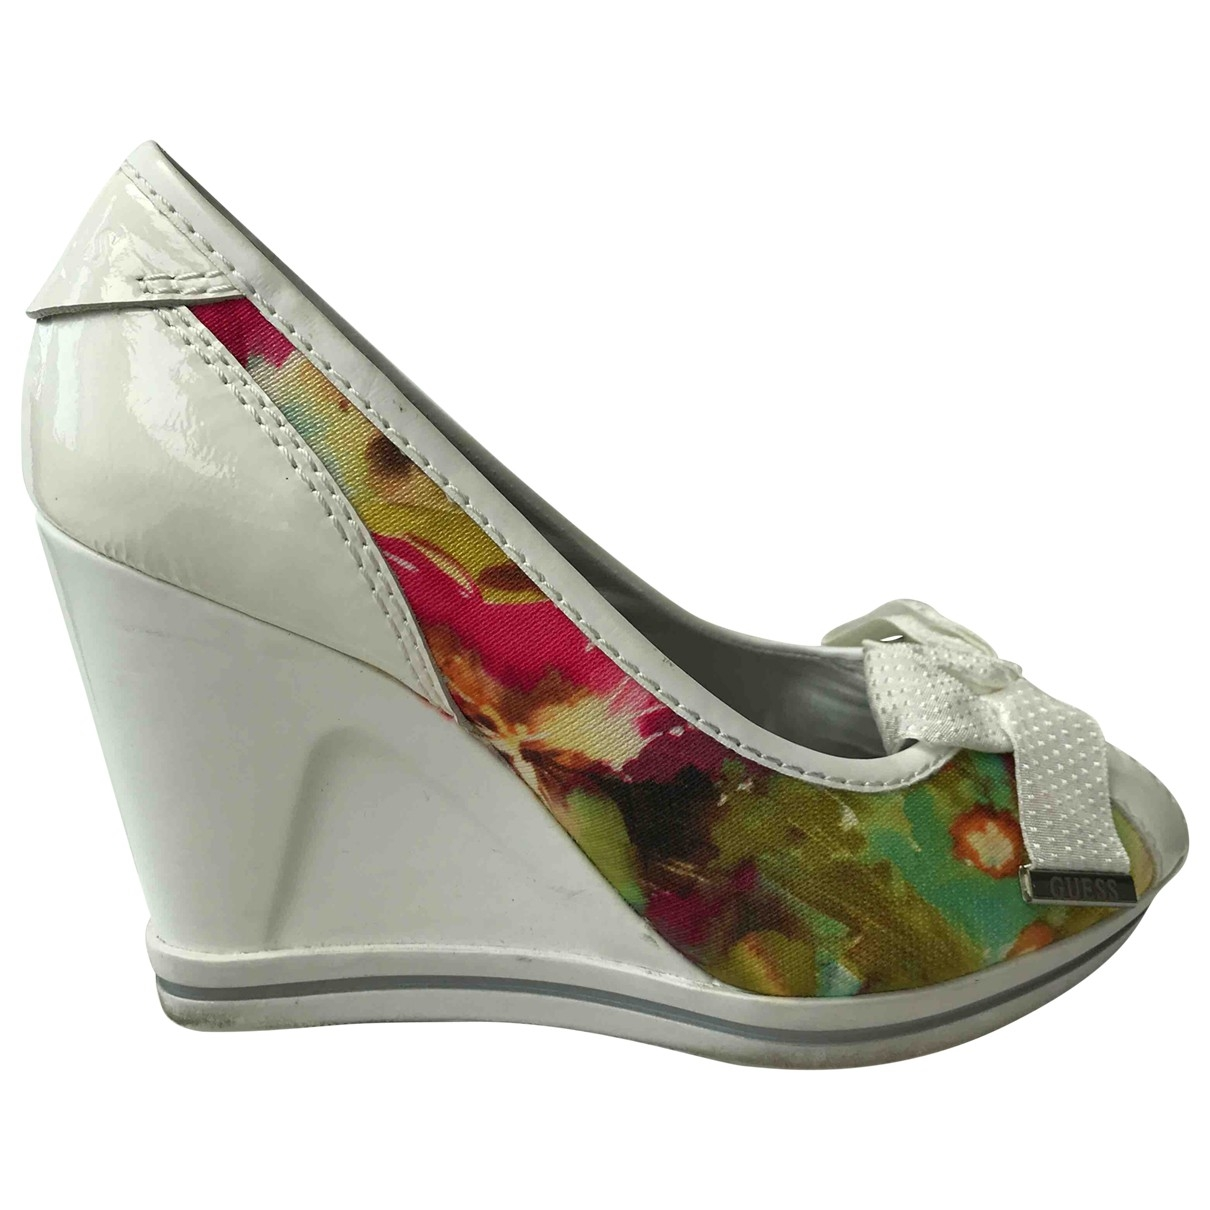 Guess \N Multicolour Patent leather Espadrilles for Women 38 EU